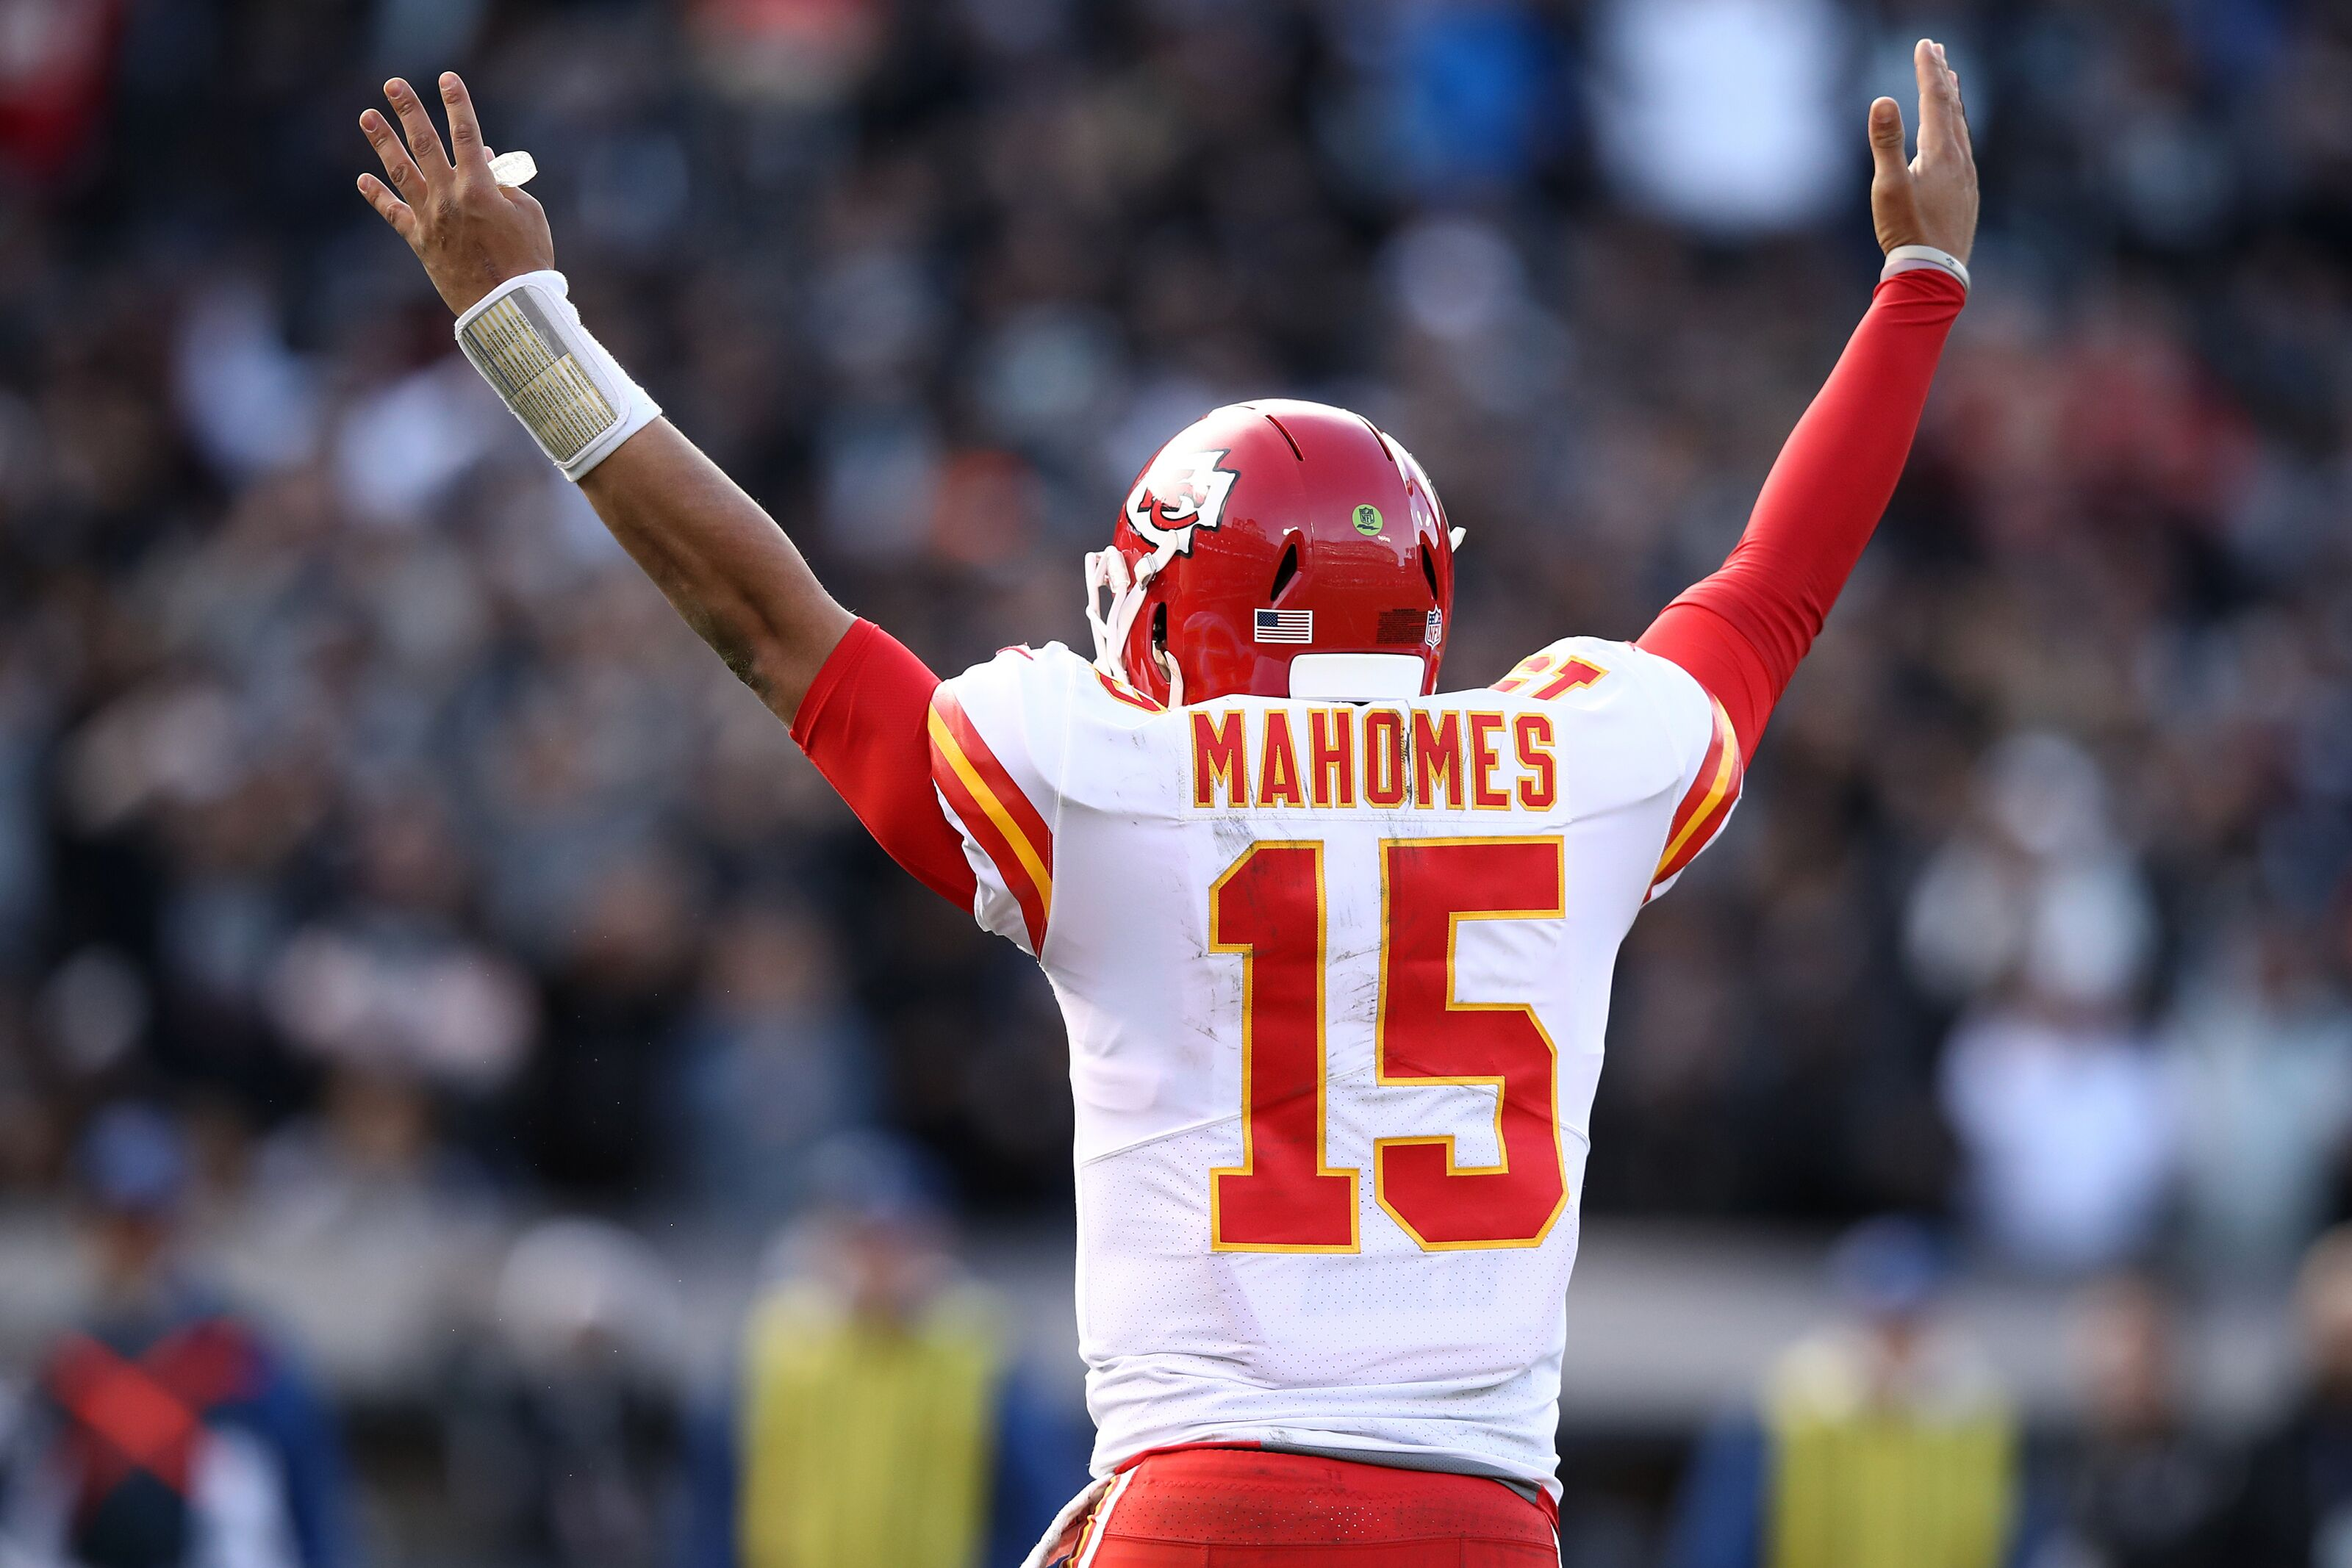 Should Patrick Mahomes be considered the best quarterback in the NFL?